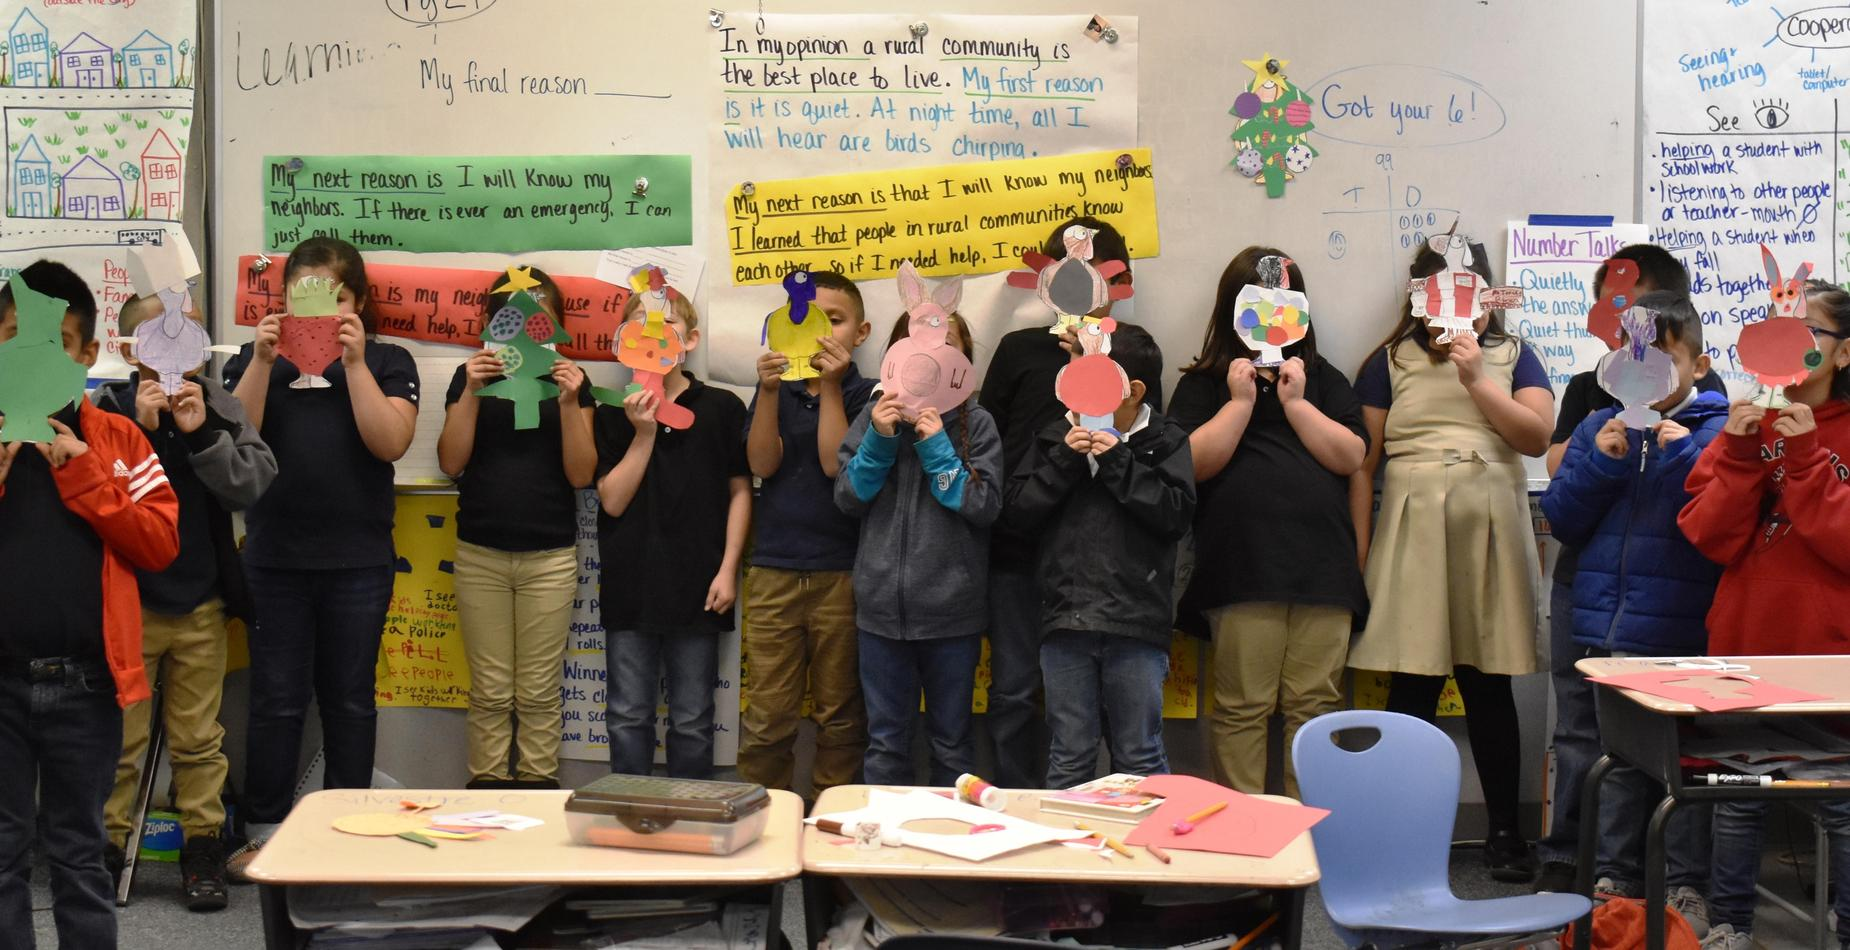 13 students standing in a row with paper turkeys they've disguised in various costumes such as a clown and a bunny rabbit.